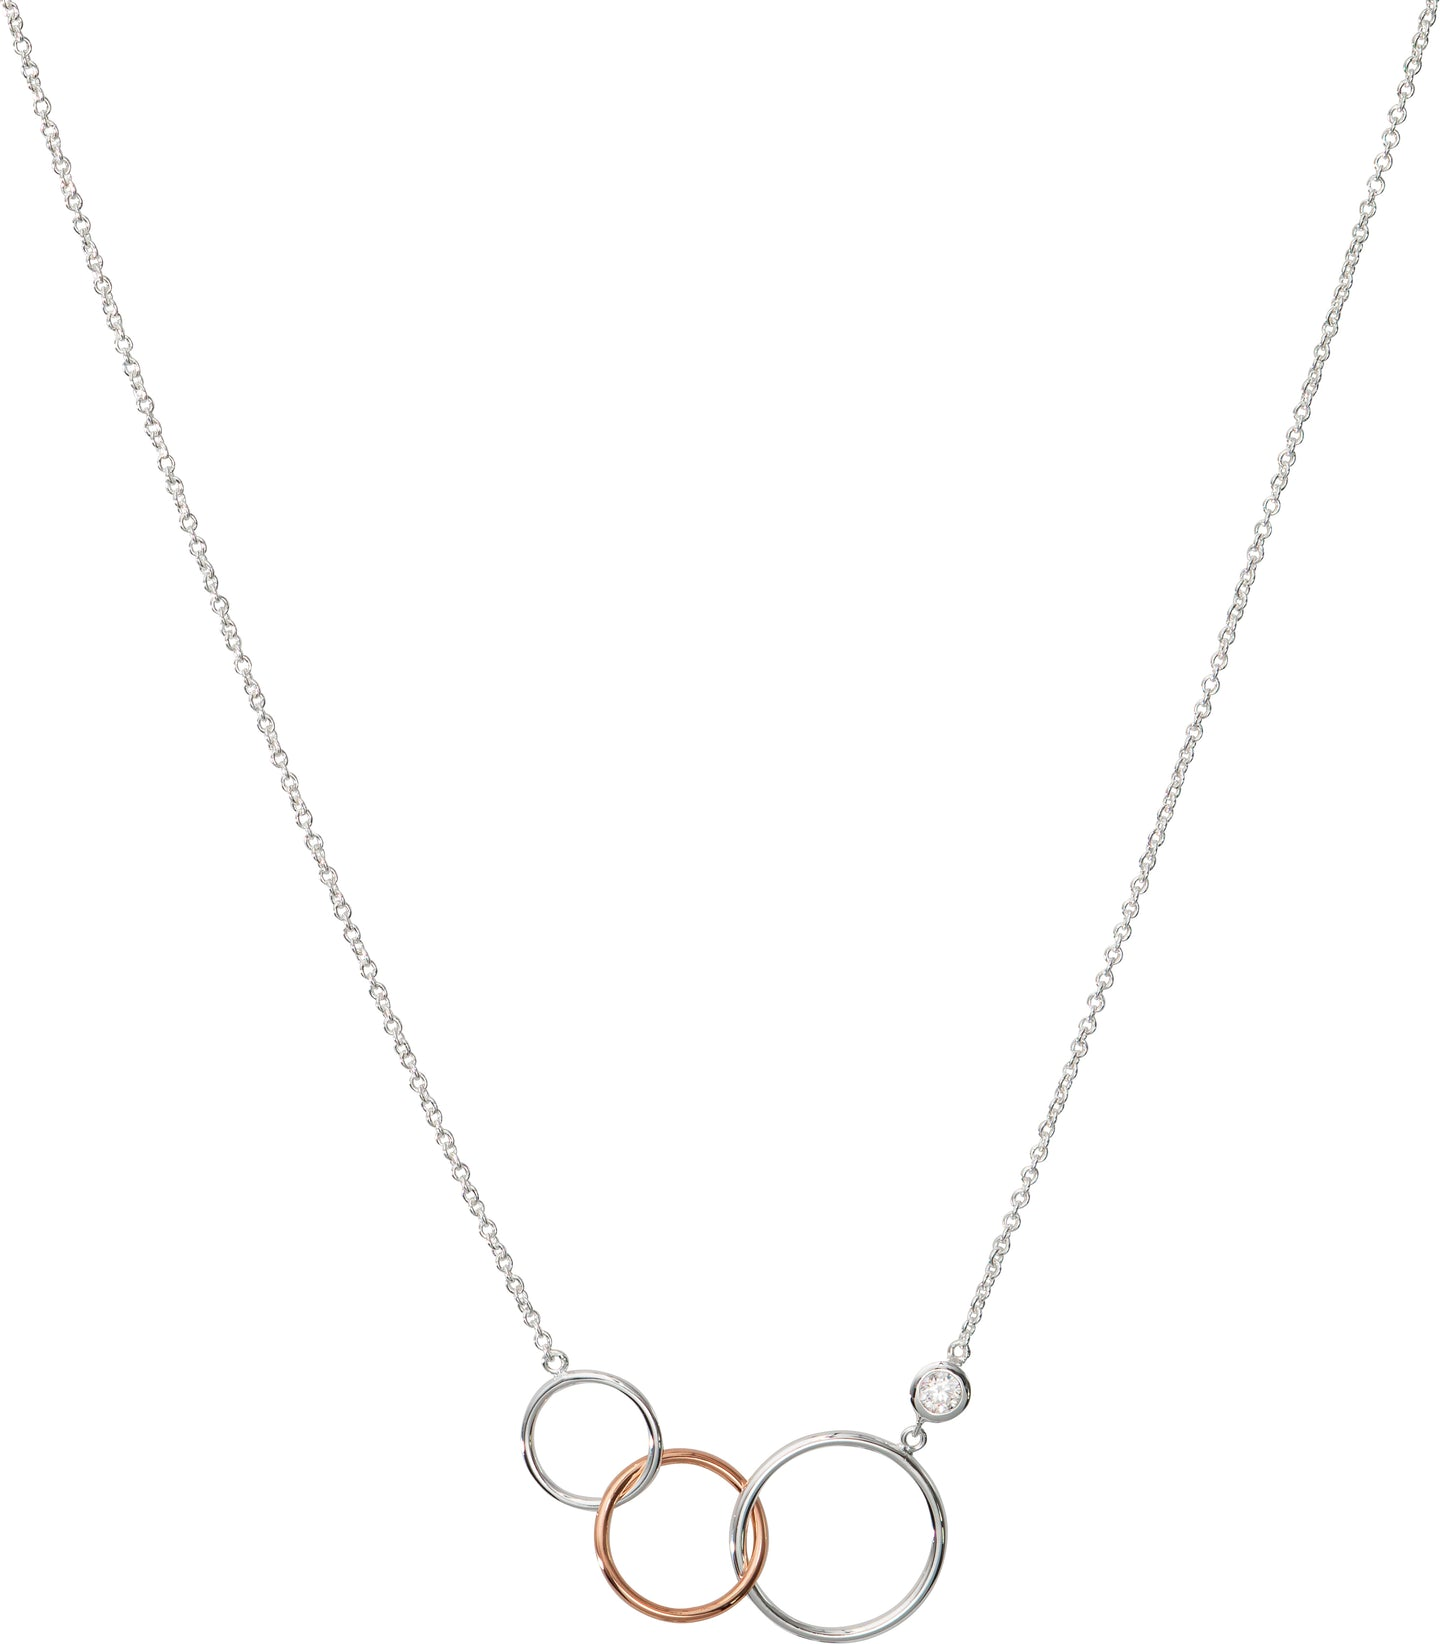 Three Hoops Linked Pendant with Chain MK-789